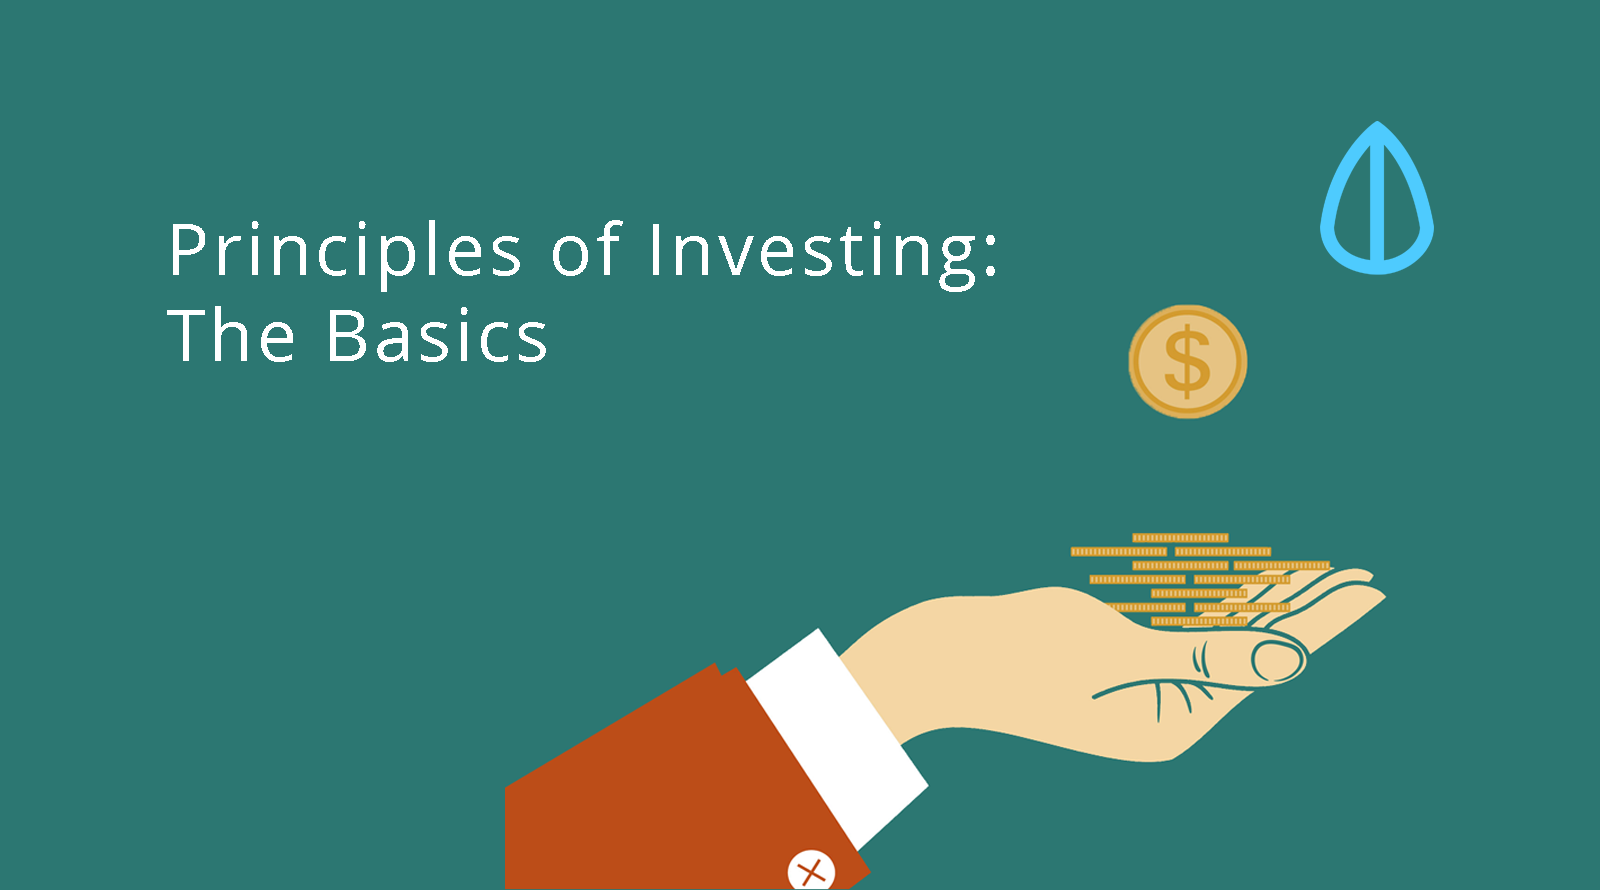 Principles of Investing: The Basics